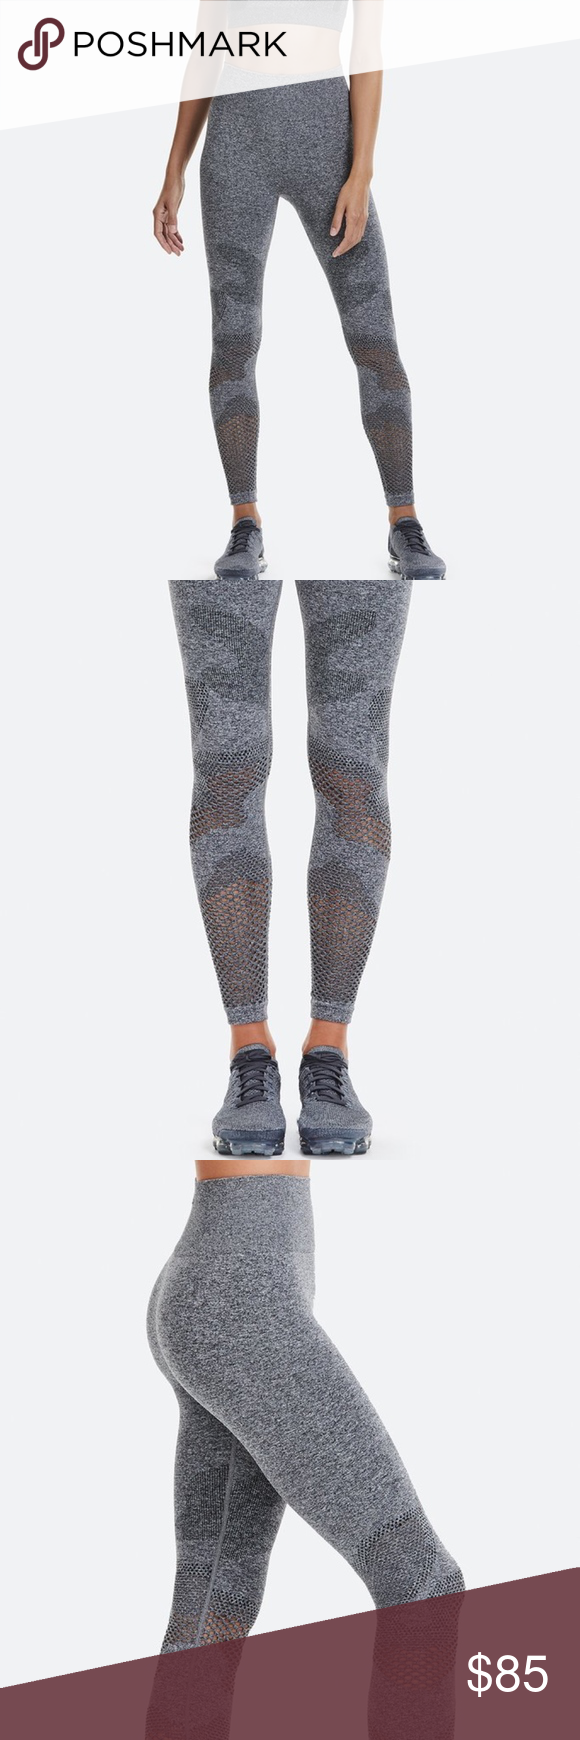 699947e853e33 ALALA Camo Seamless Tights (S) (NWT) Bought these in both black and ...